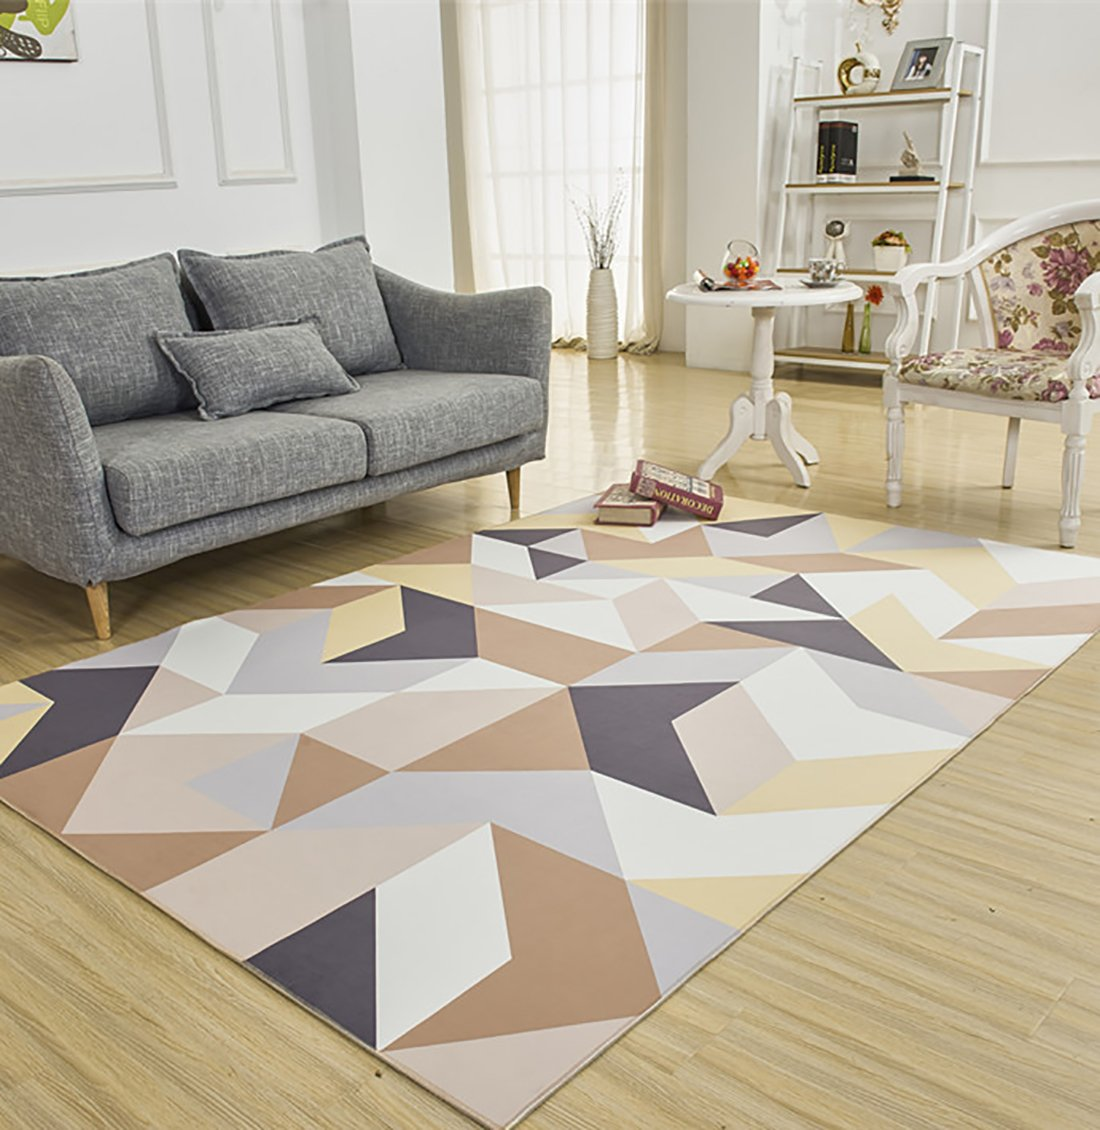 SANNIX Soft Fabric Shaggy Area Rug Fluffy Living Room Carpets for Home Decor Nursery Rugs with Non-Skid Rubber Backing geometric pattern 200X300CM